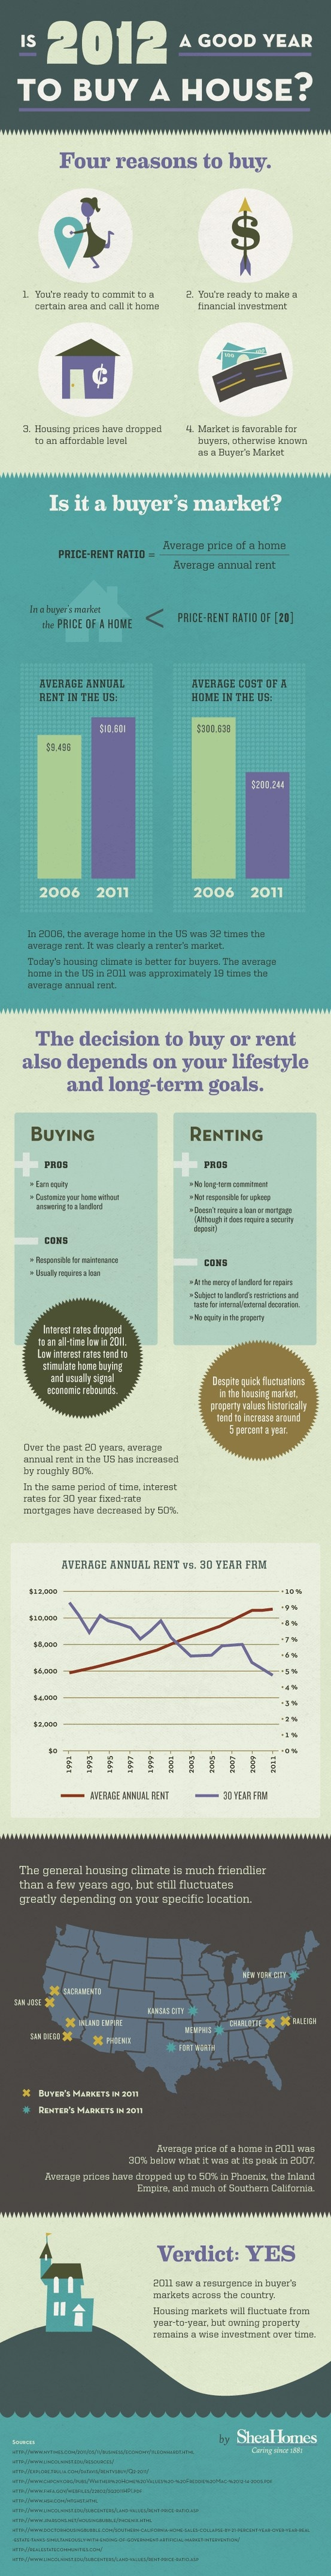 Is 2012 a good year to buy a house?